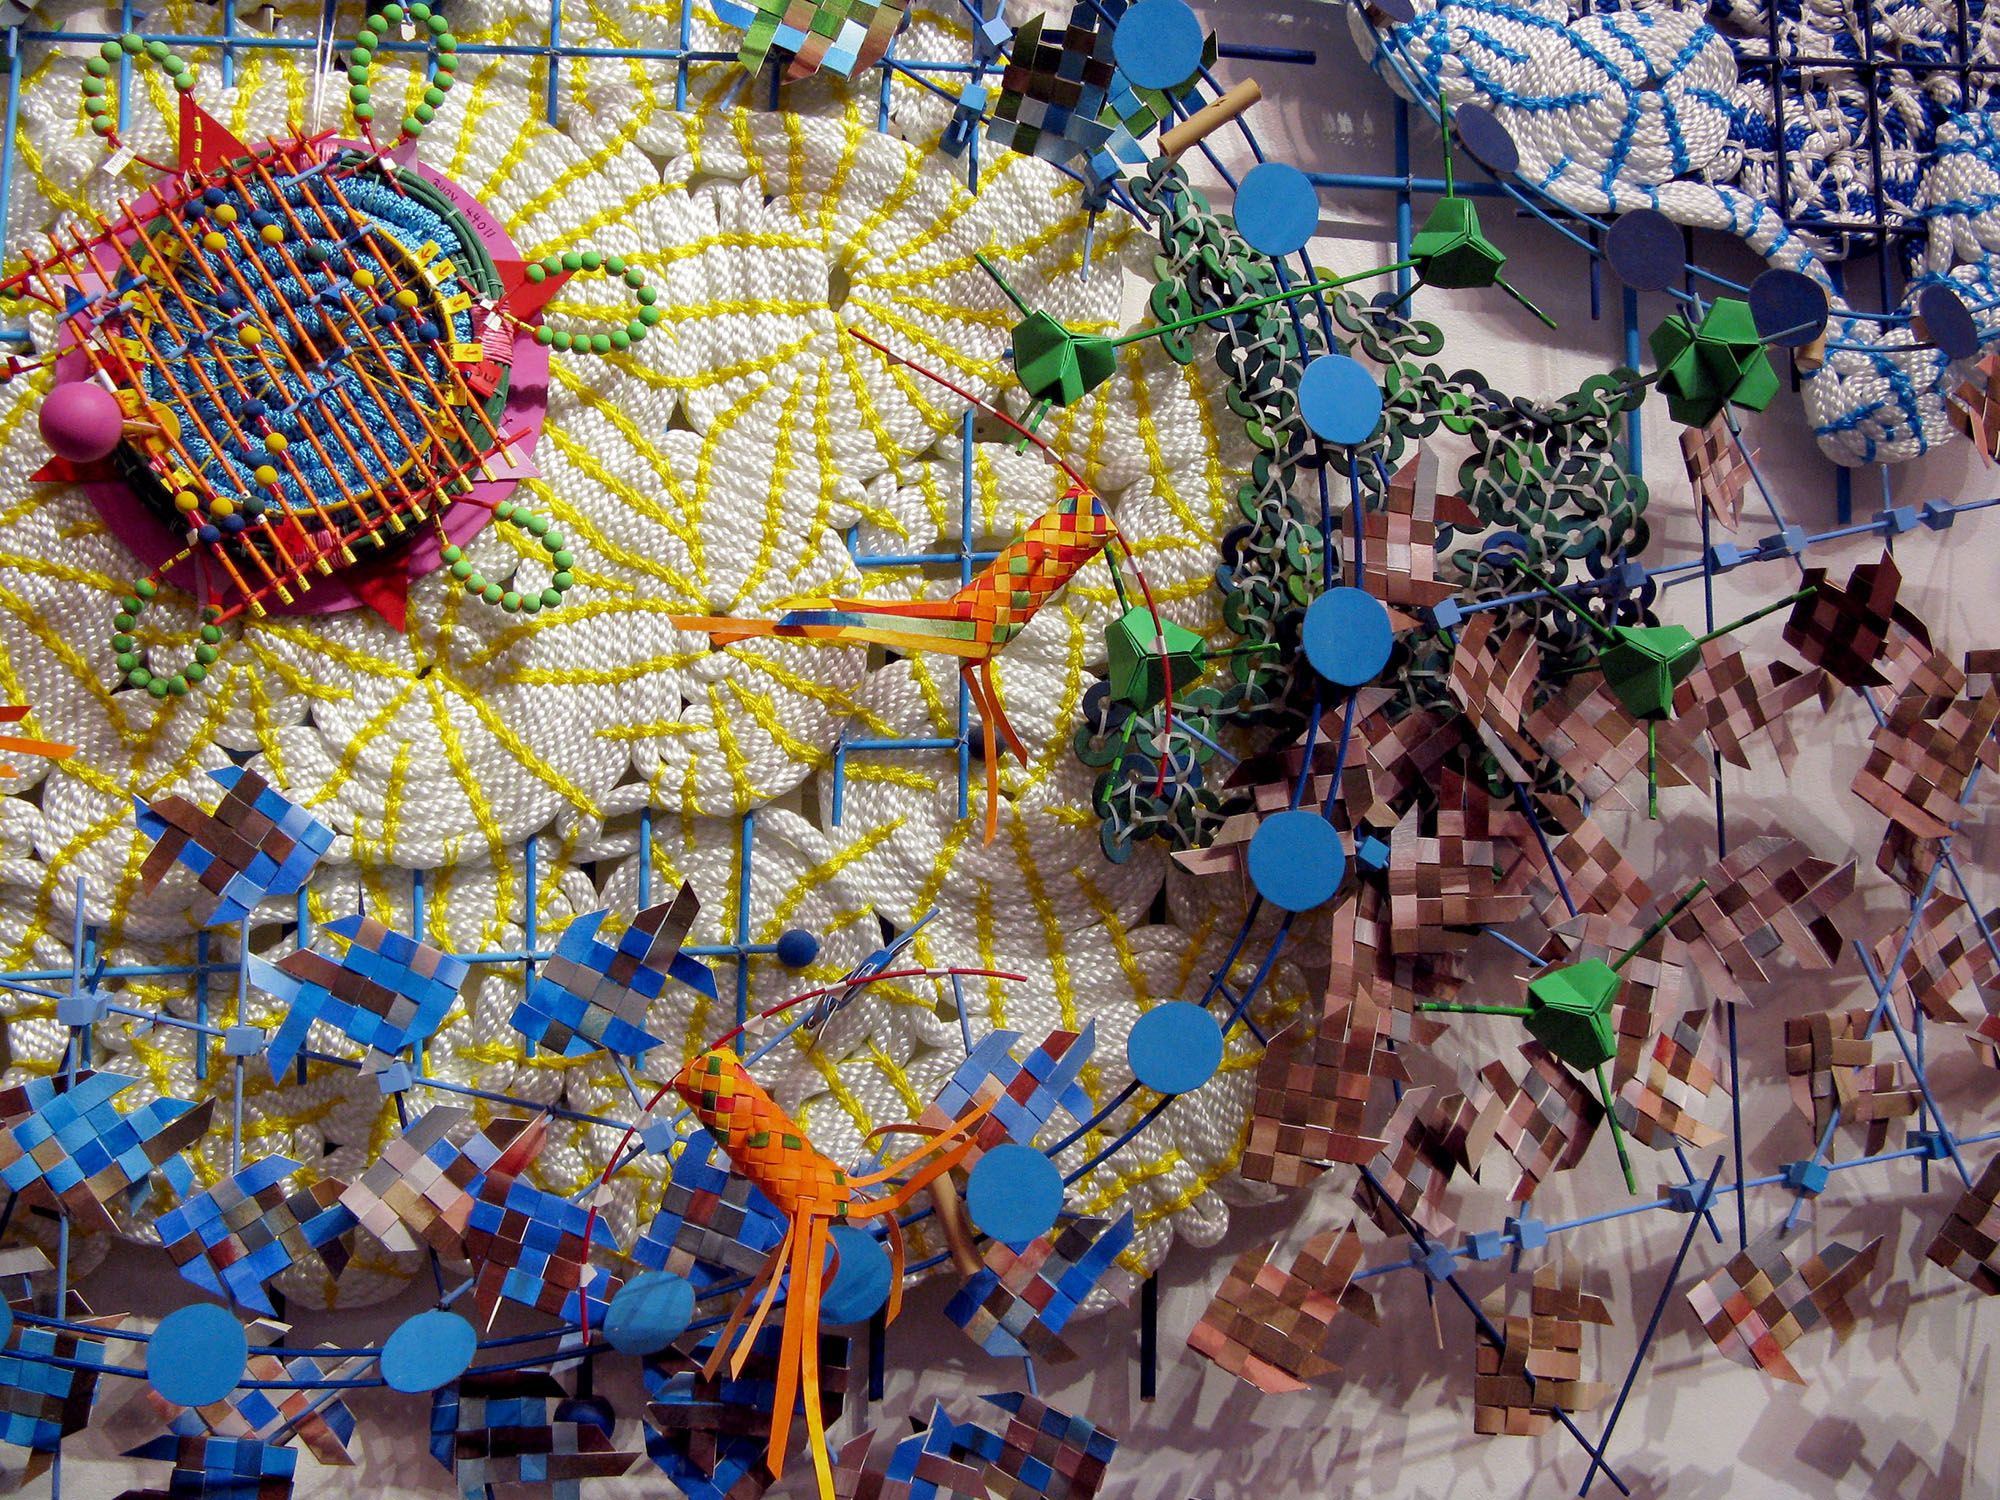 Meteorological Data Visualized as Mixed Media Sculptures by Nathalie Miebach Artes & contextos 5 CWDetails3